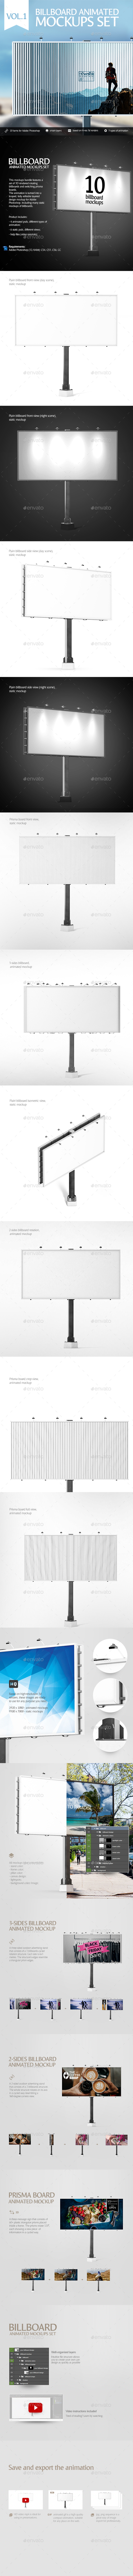 Billboard Animated Mockups Set Vol.1 - Displays Product Mock-Ups